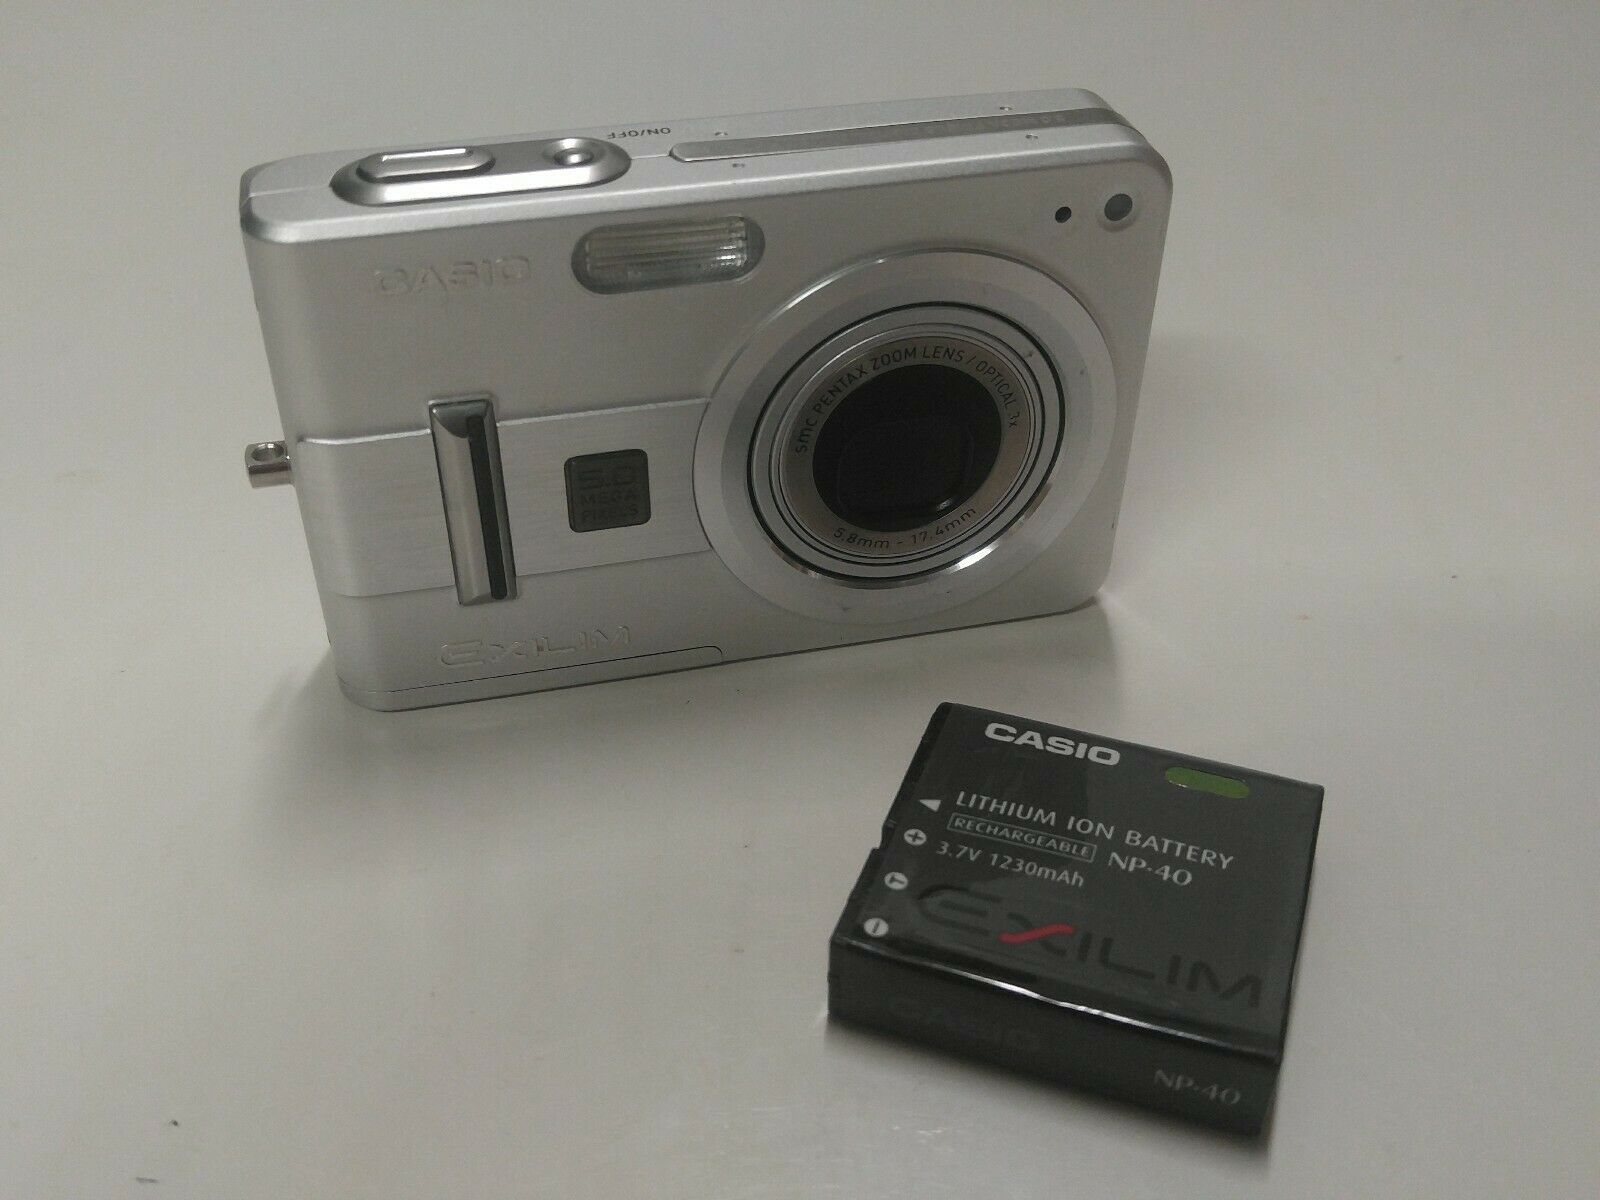 Primary image for Casio Exilim EX-Z57 5.0MP Digital Camera 3x Zoom Tested Working Free Shipping